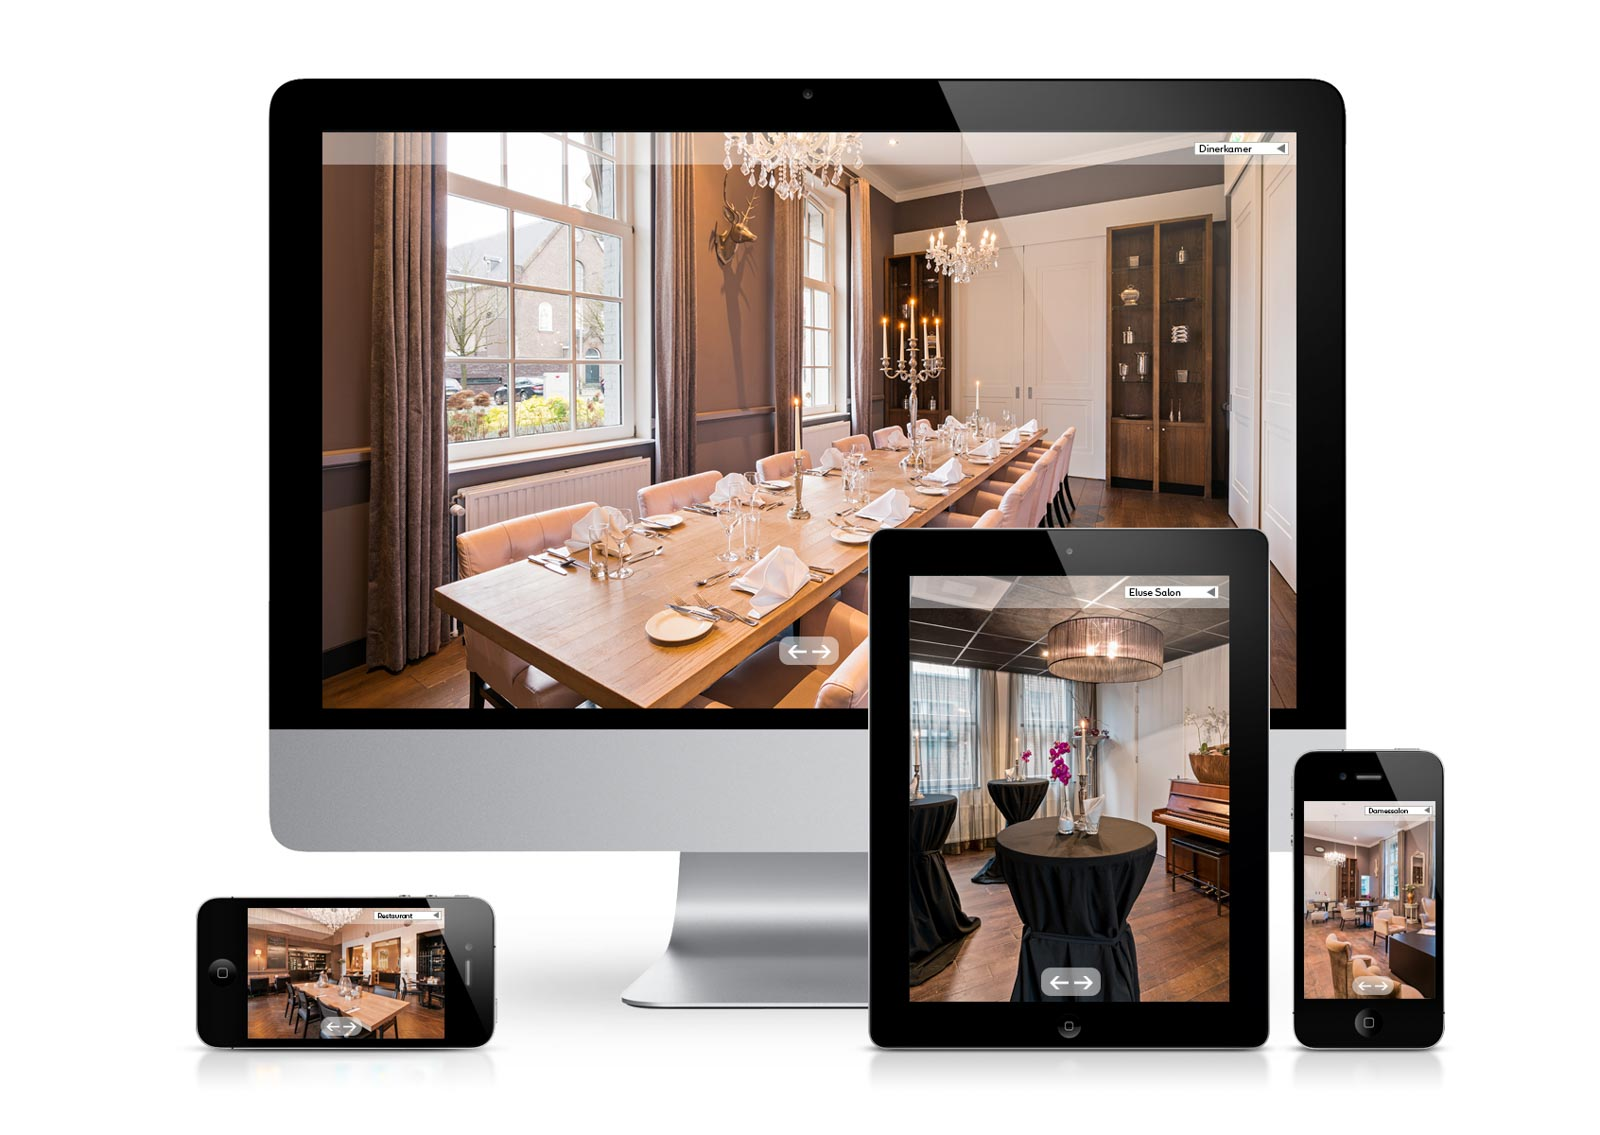 Viditour of Hotel Merlinde on different devices